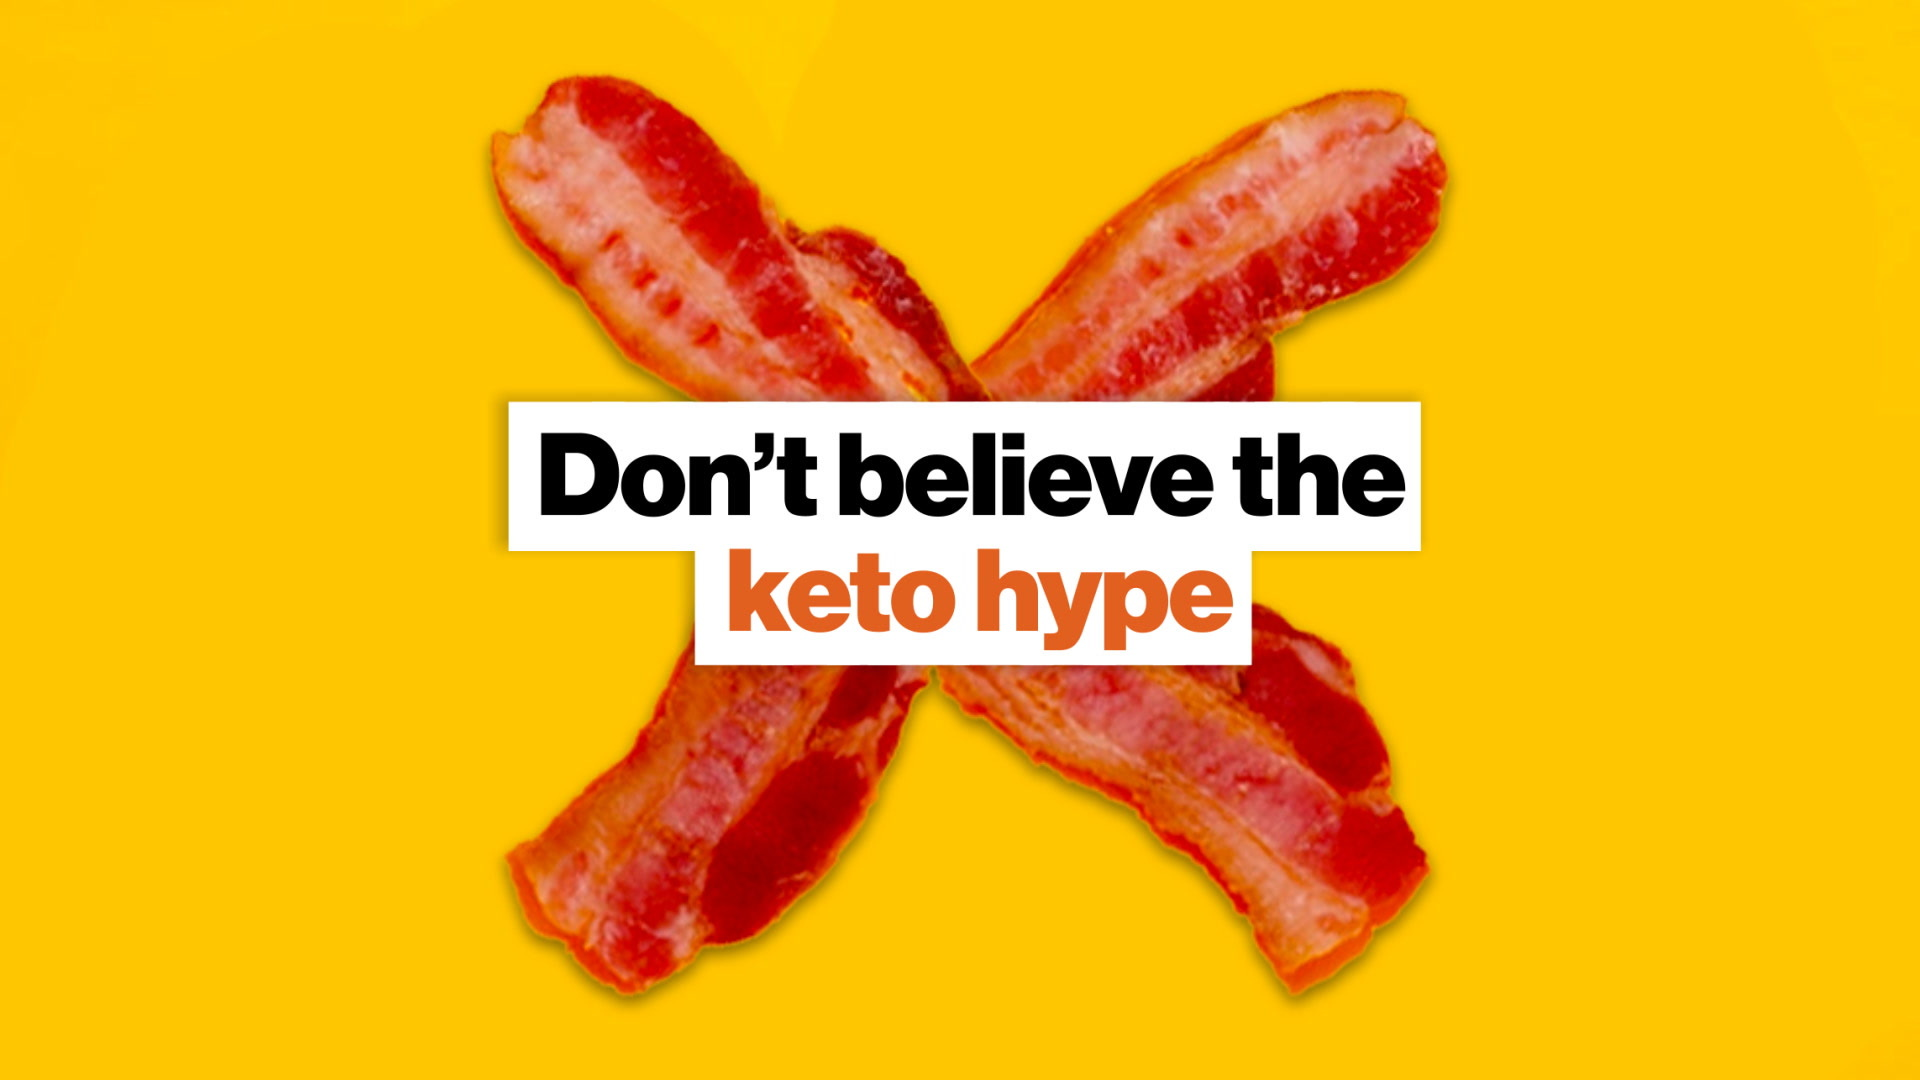 Don't believe the keto hype